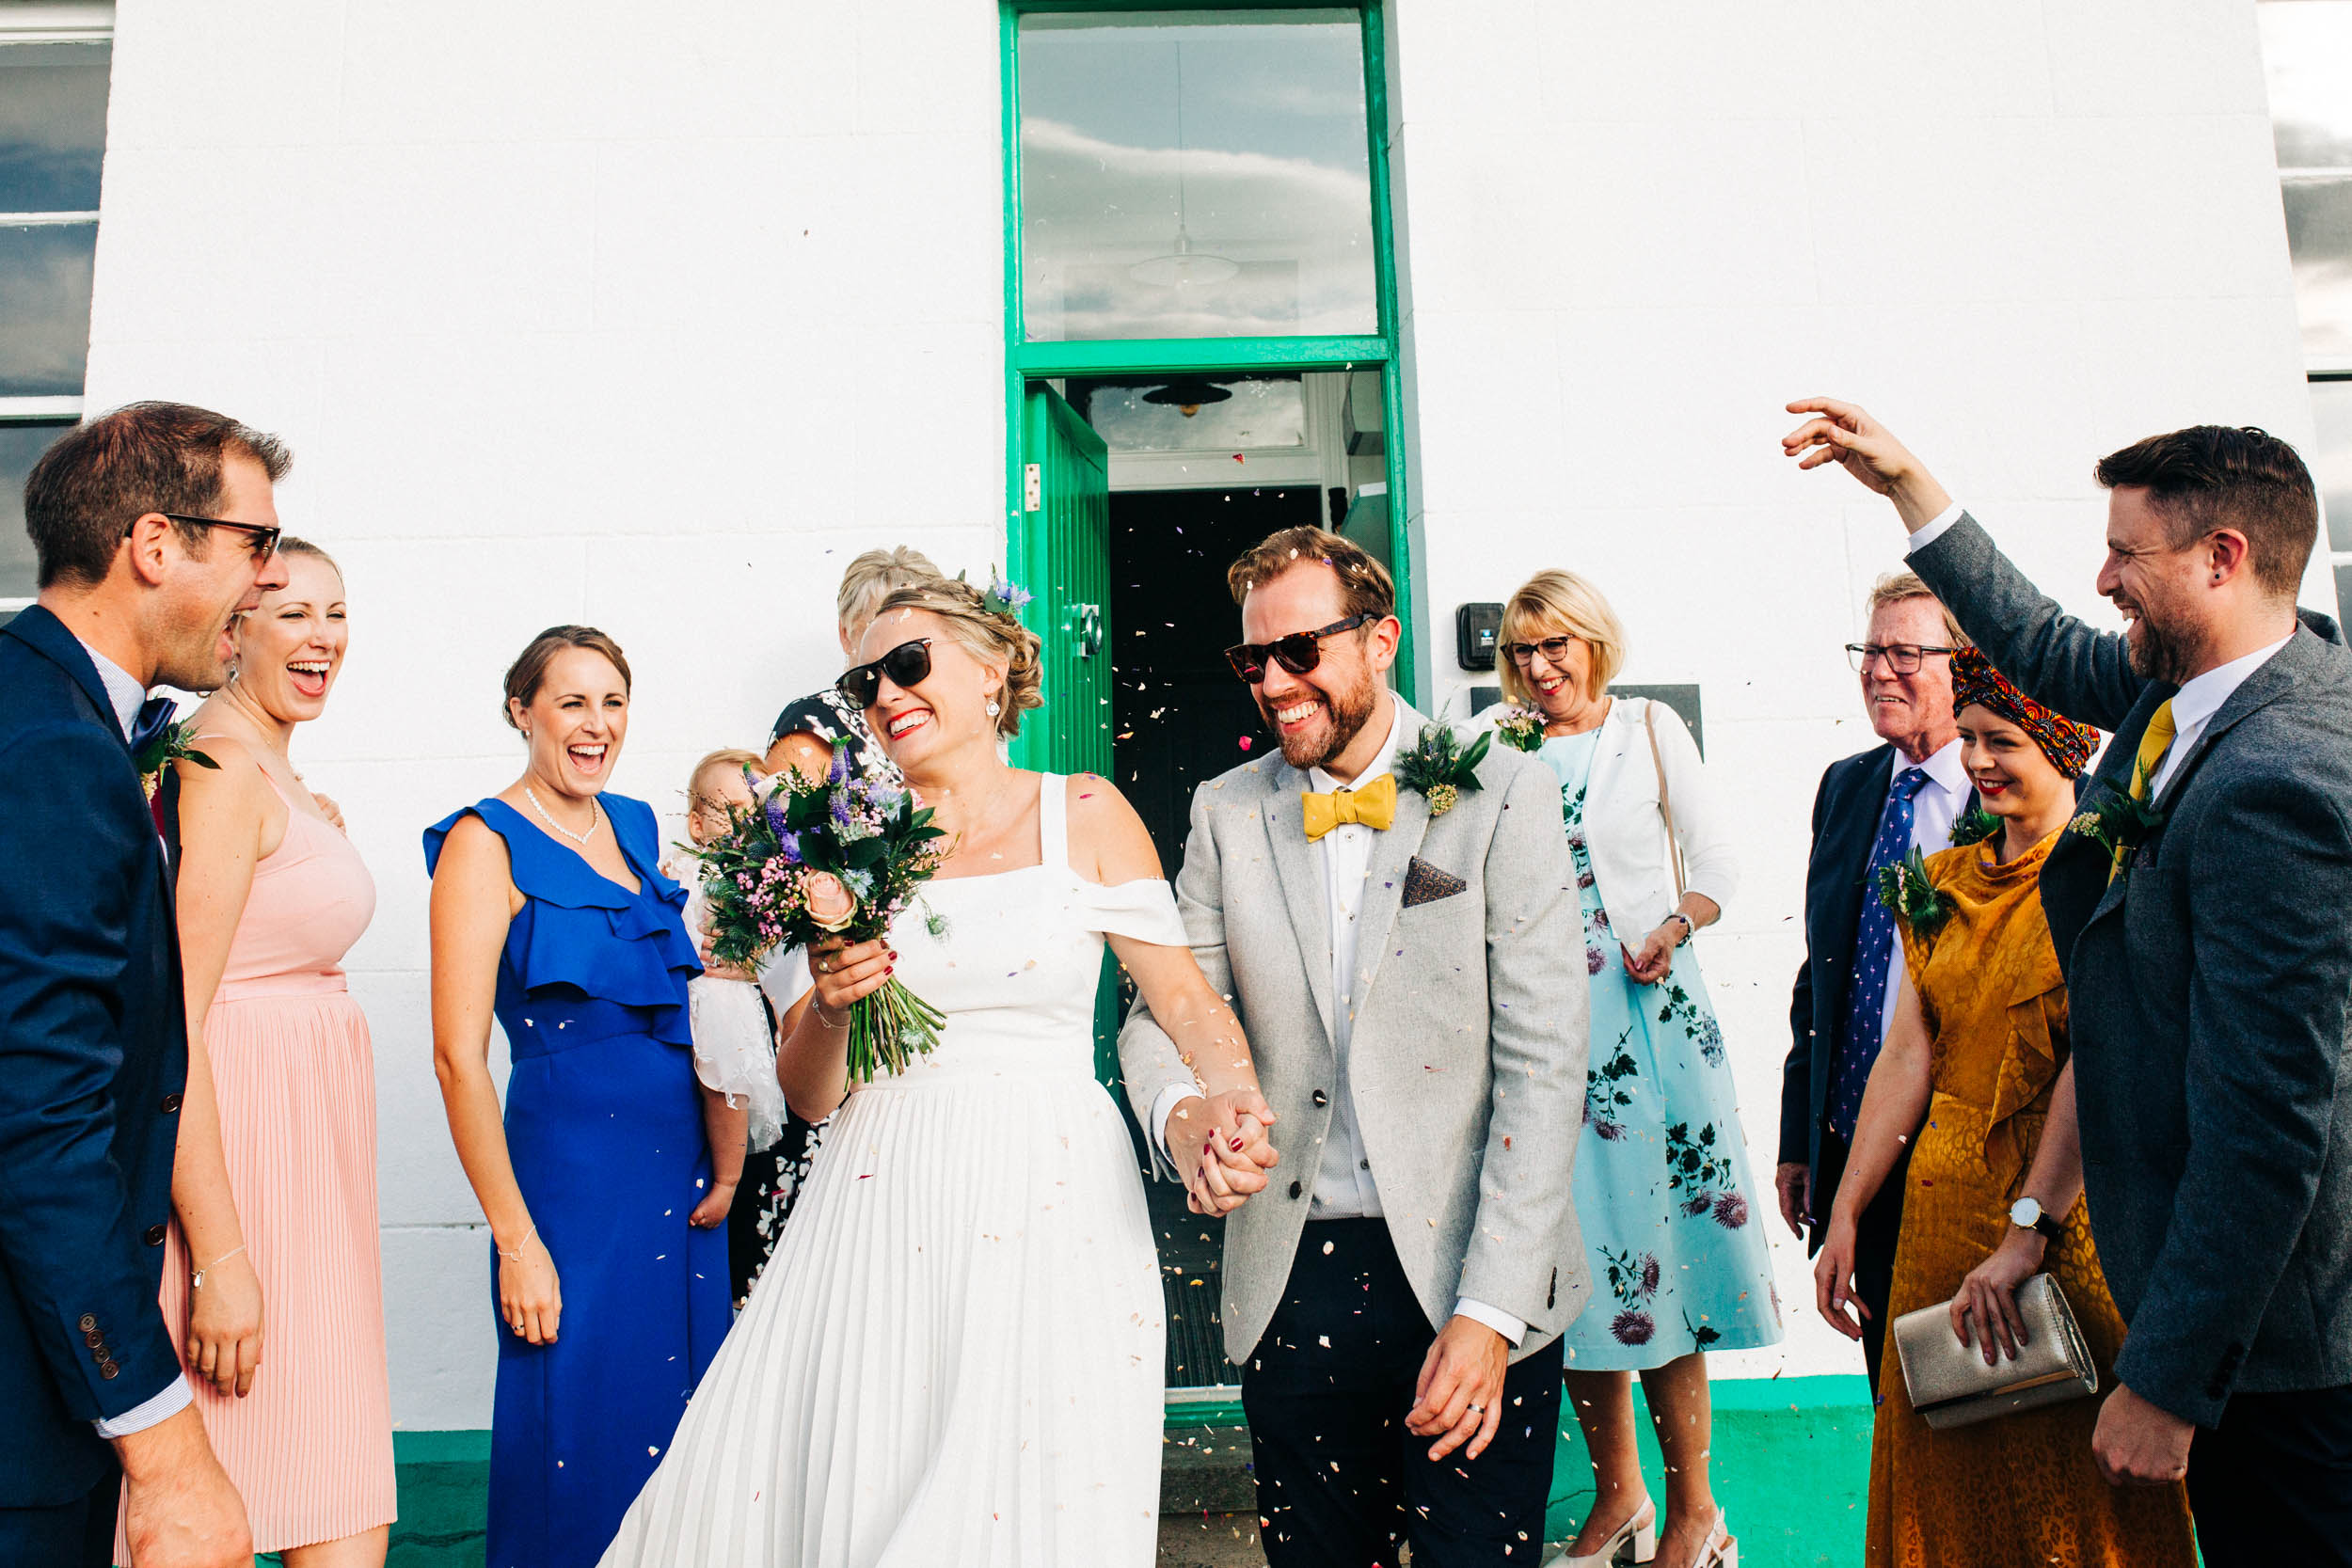 Alex_Sedgmond_Photography-MonkNashLighthouse-WeddingPhotography-Penny&Mike-235.jpg